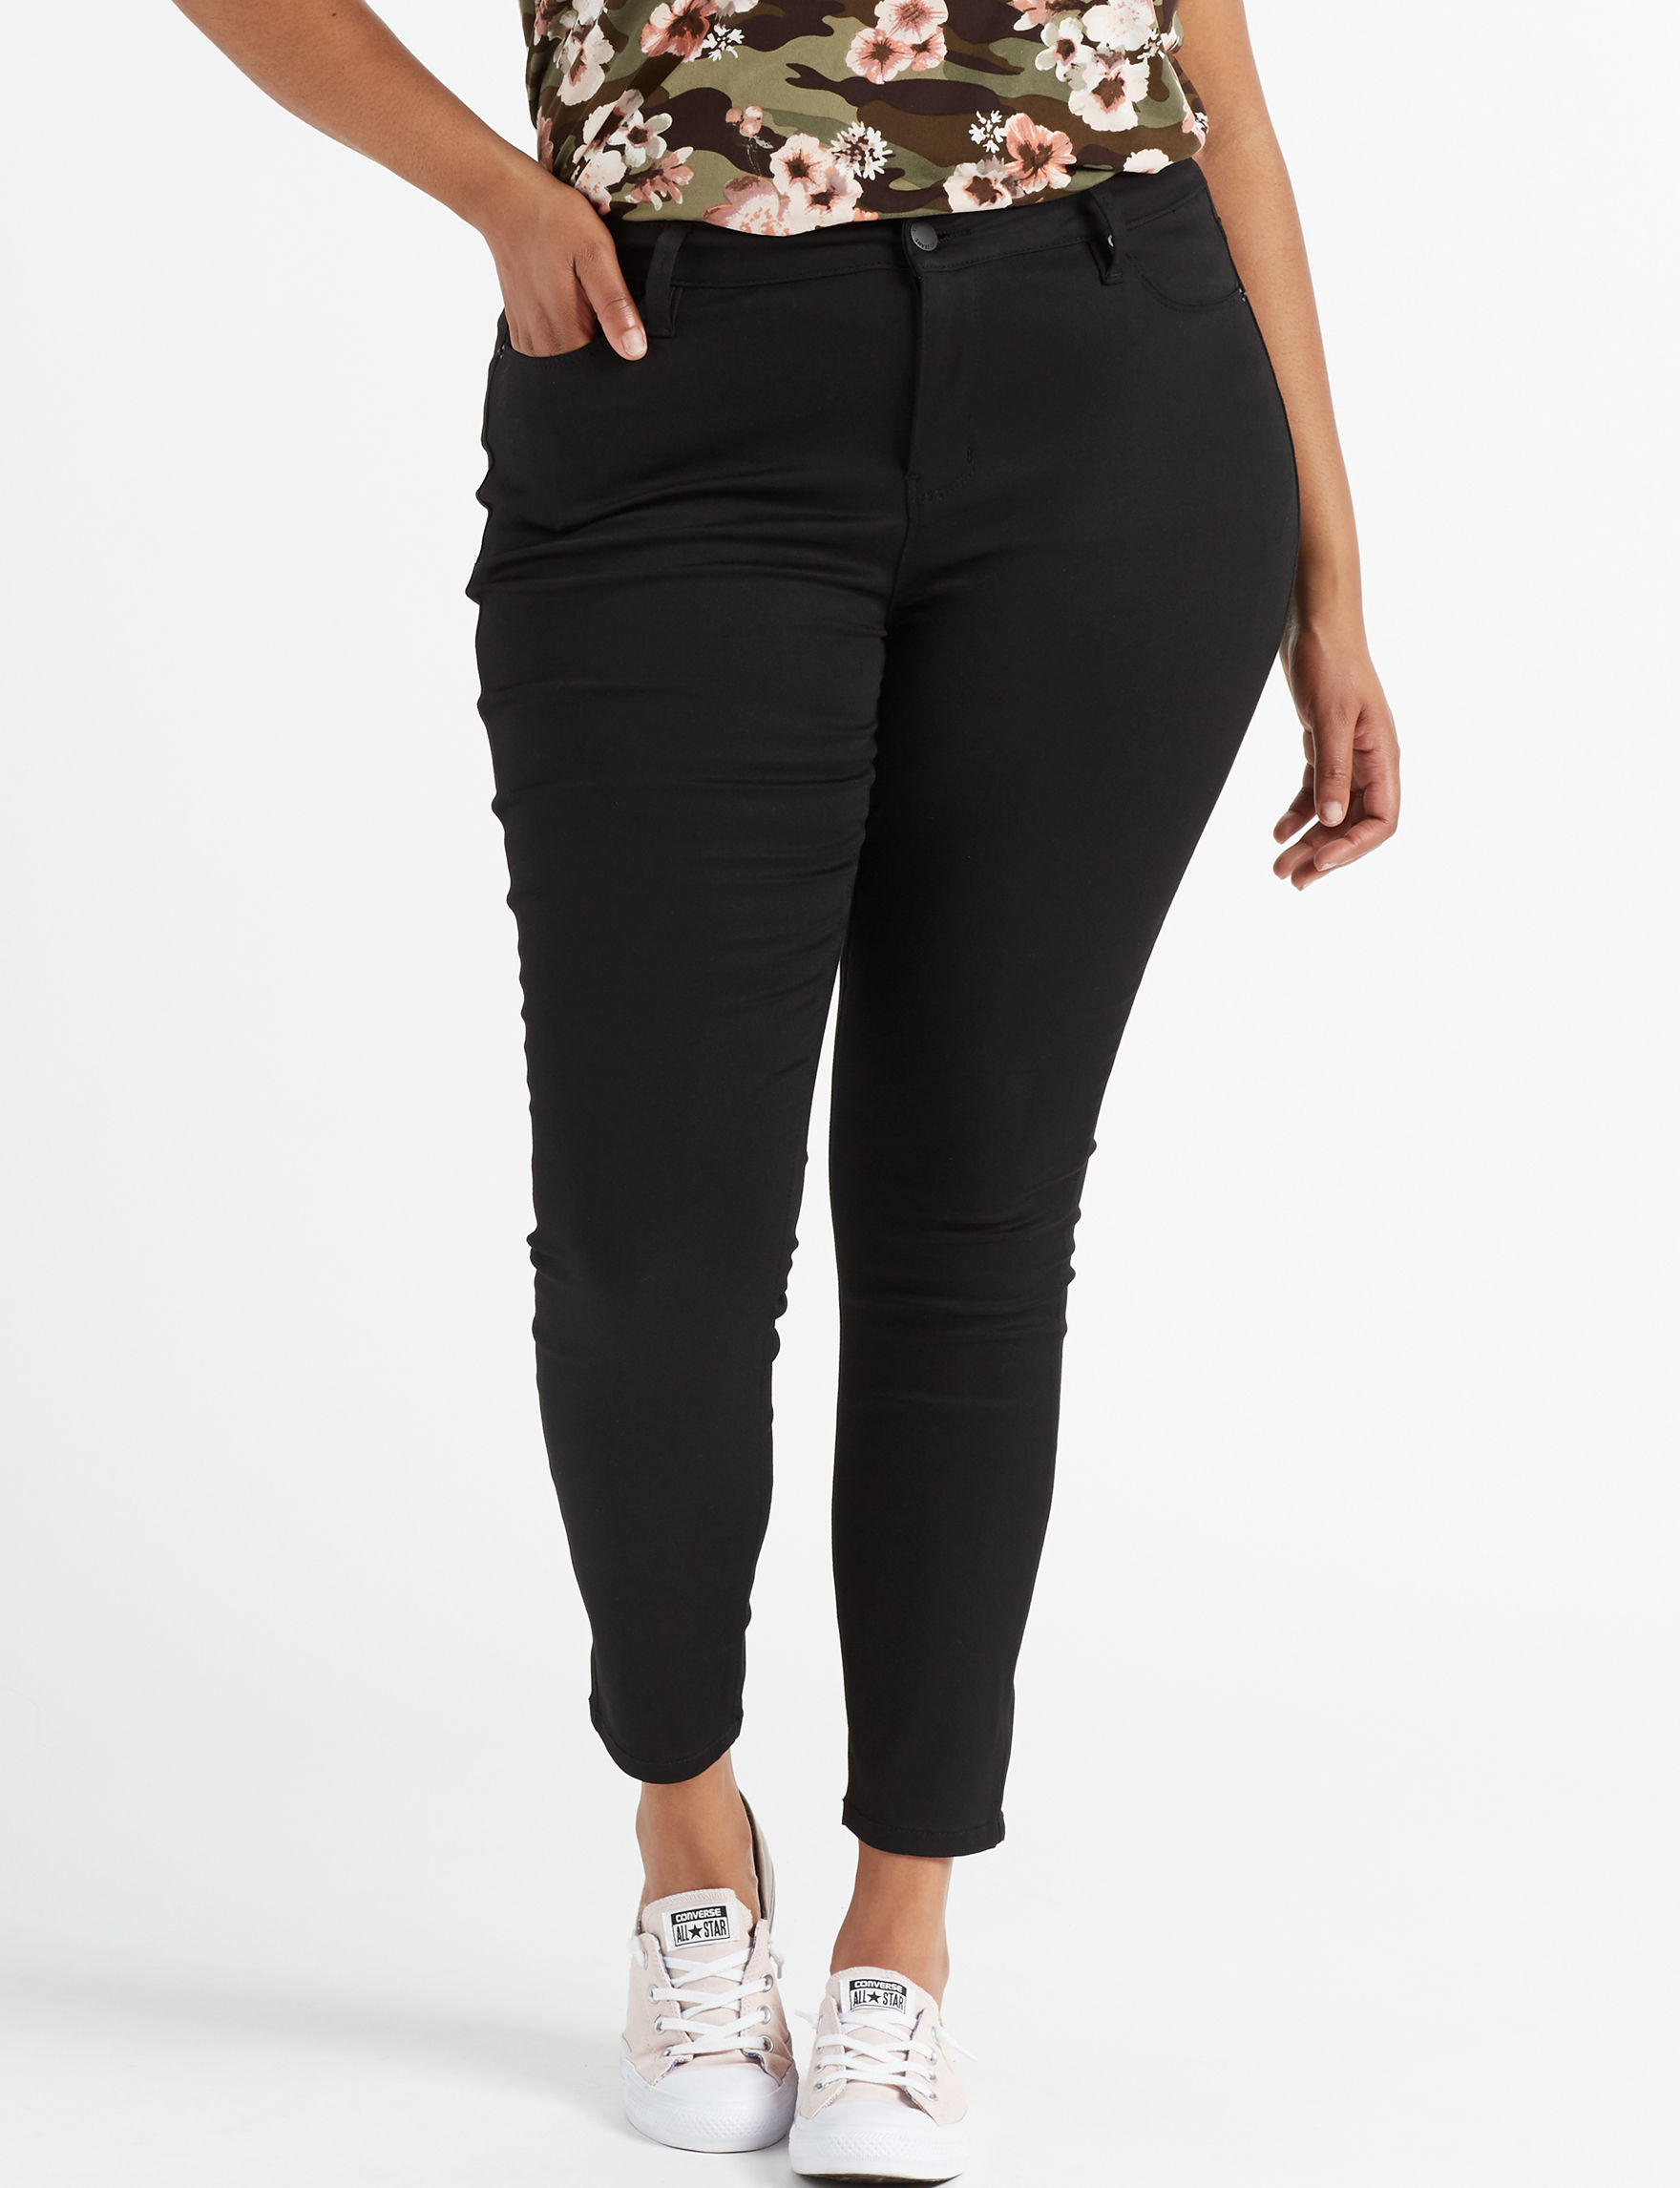 c17d2dbd2e93 YMI Juniors' Plus Size Forever Black Skinny Jeans | Stage Stores